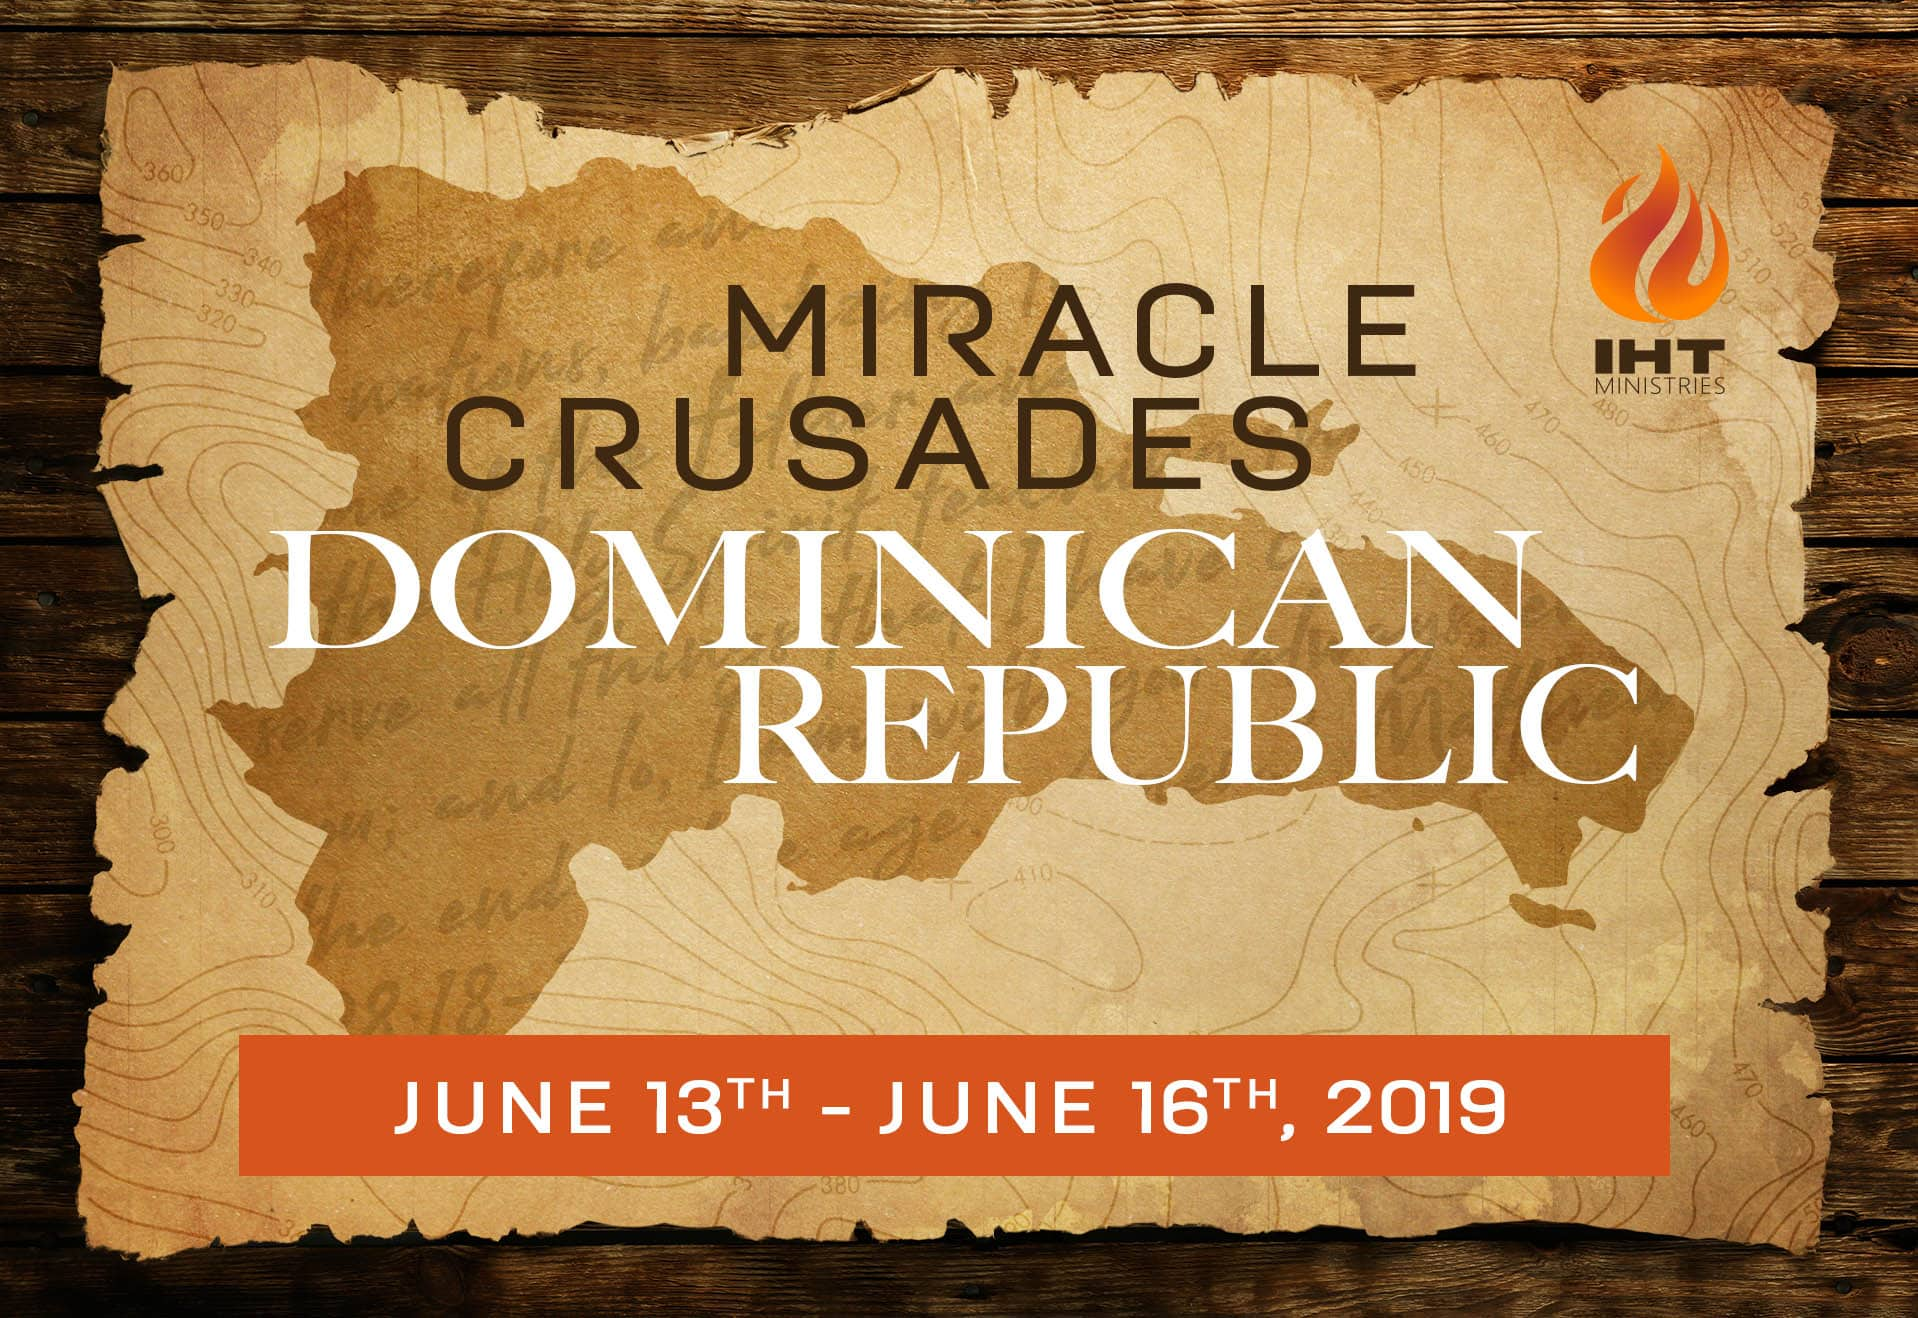 Dominican Republic Crusades 2019